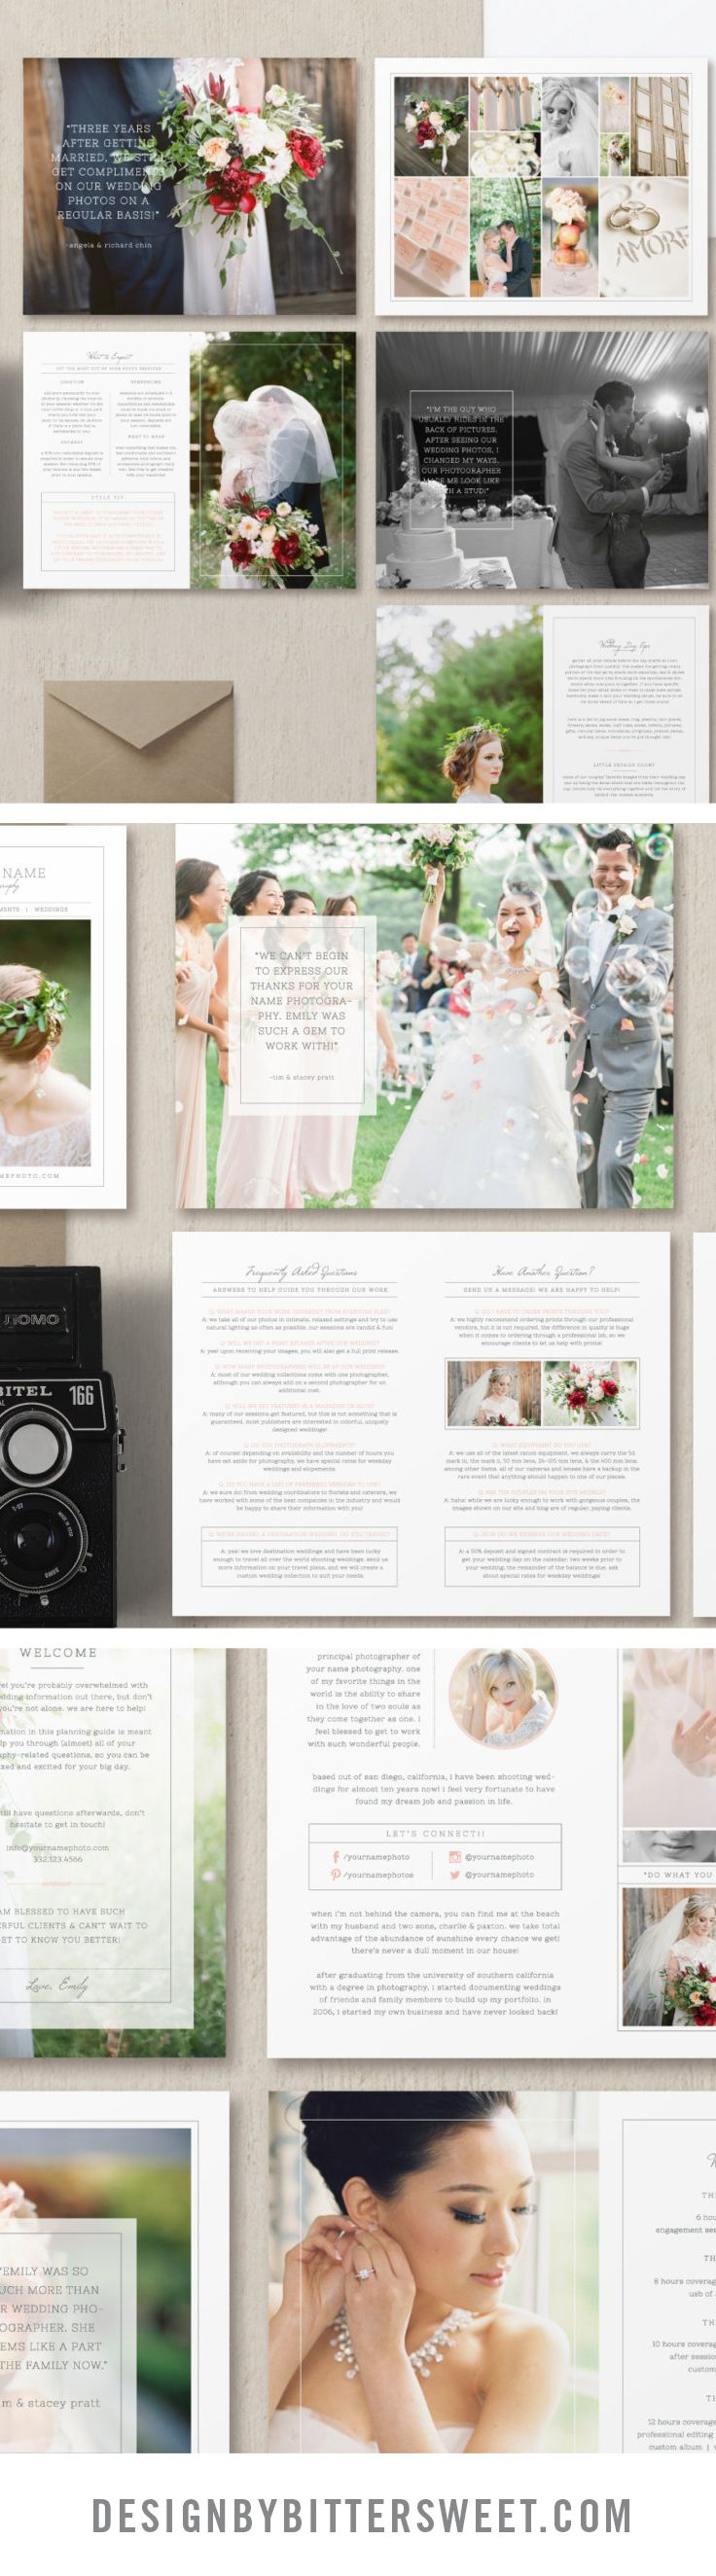 "Create a unique magazine to attract your ideal clients and stand out above the crowd with this wedding welcome packet. Professionally written text along with customizable sections give you a versatile package to deliver to your clients as a digital guide or as a beautifully printed 8.5""x11"" magazine to show off your work. Beautiful images by @abbiemcfarland"